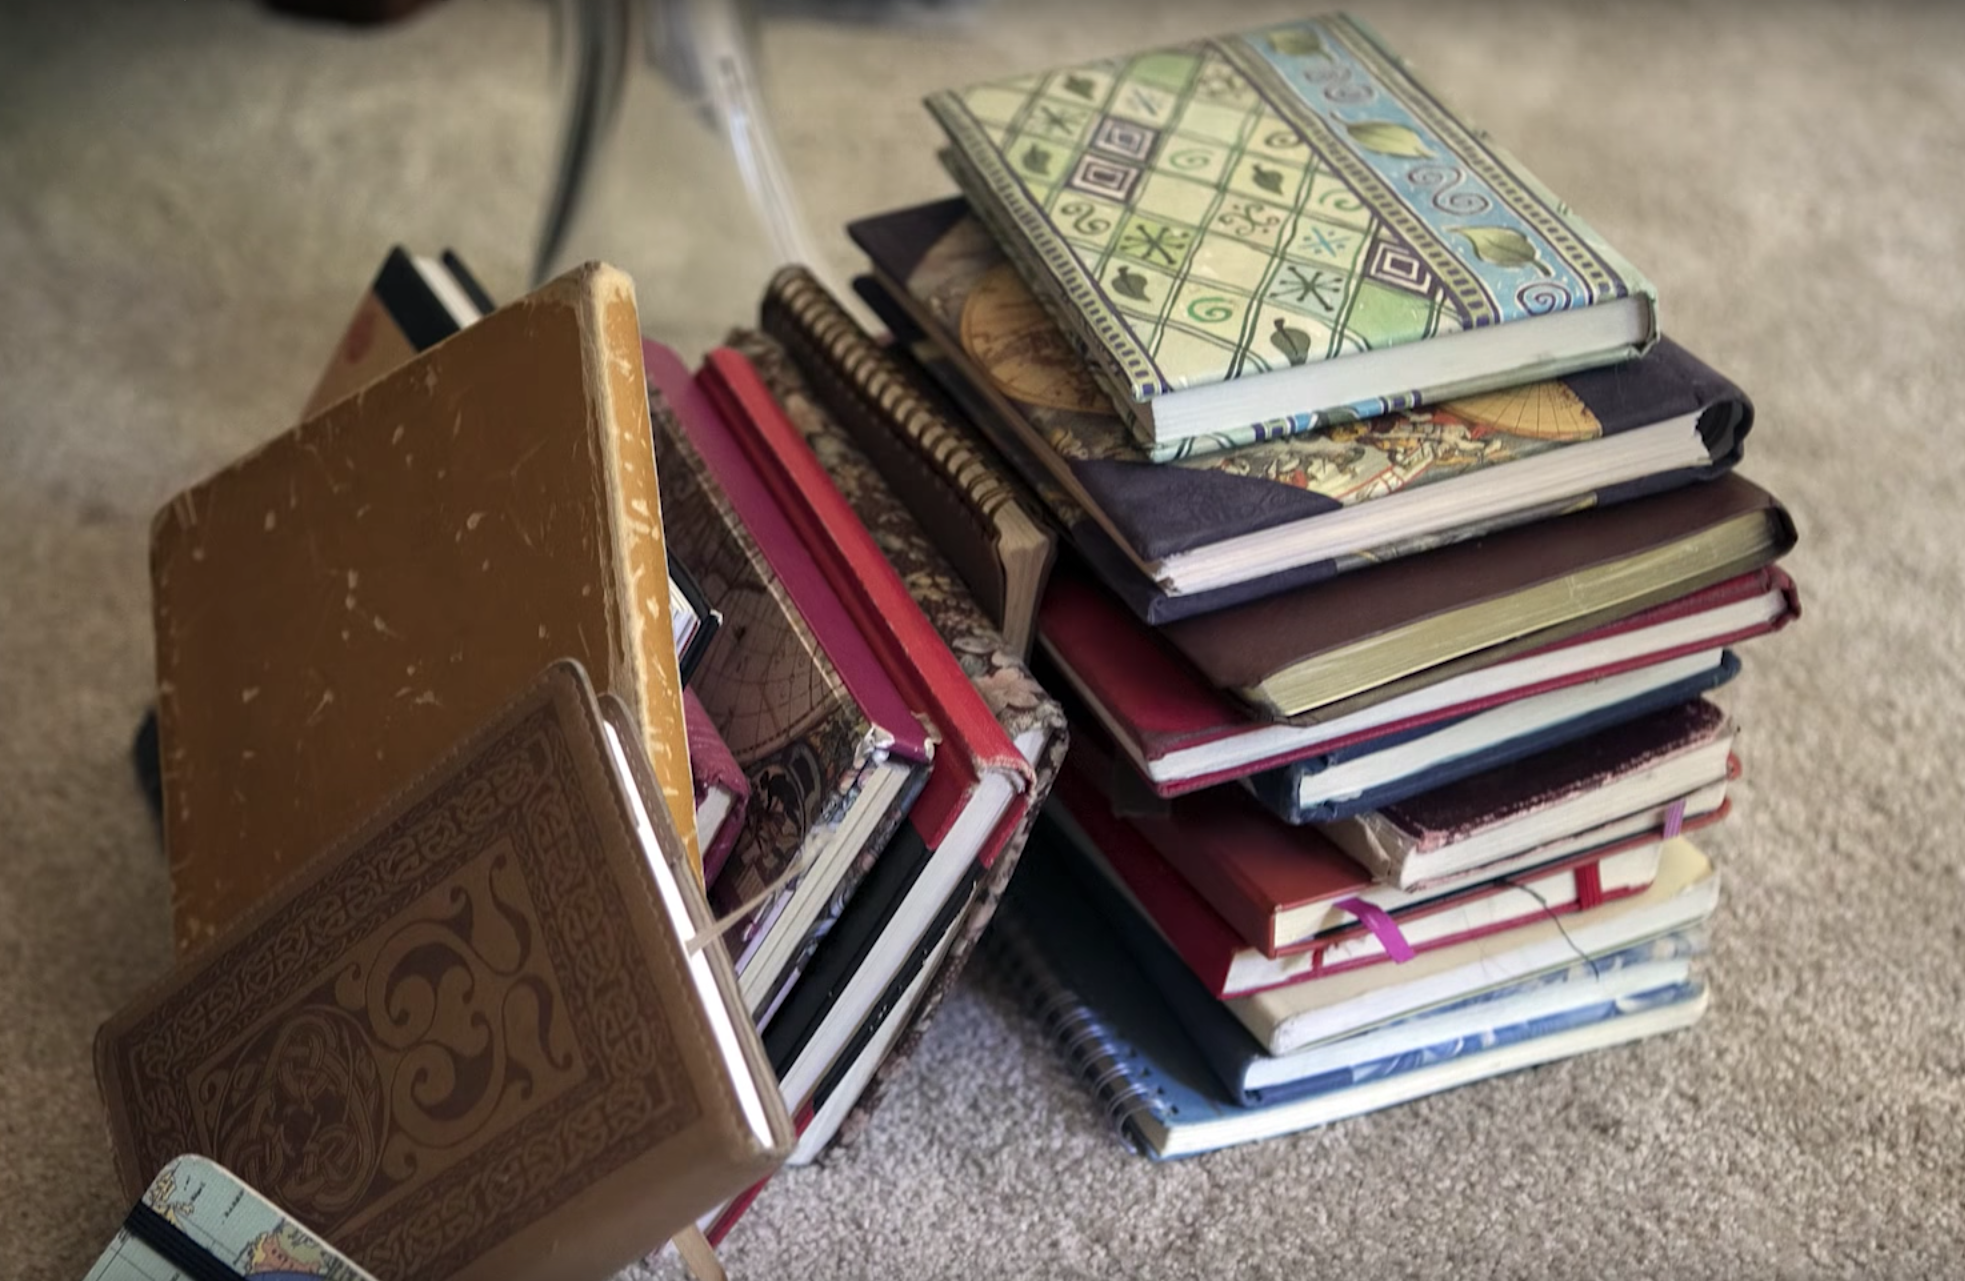 Juli has kept a journal, many journals in fact. And she read them all en masse, three years ago.